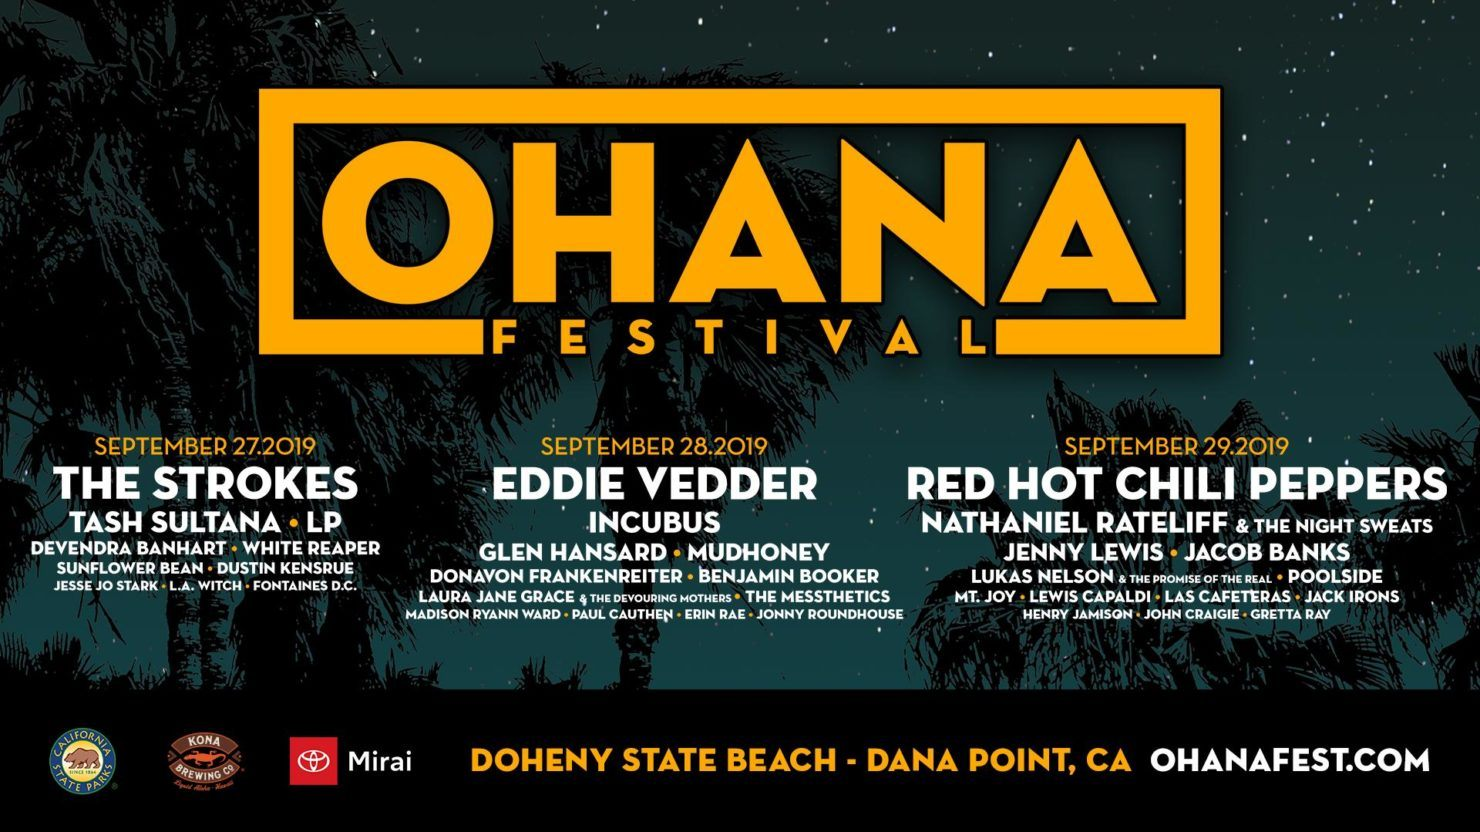 Ohana Festival Announces 2019 Lineup: Red Hot Chili Peppers, Eddie